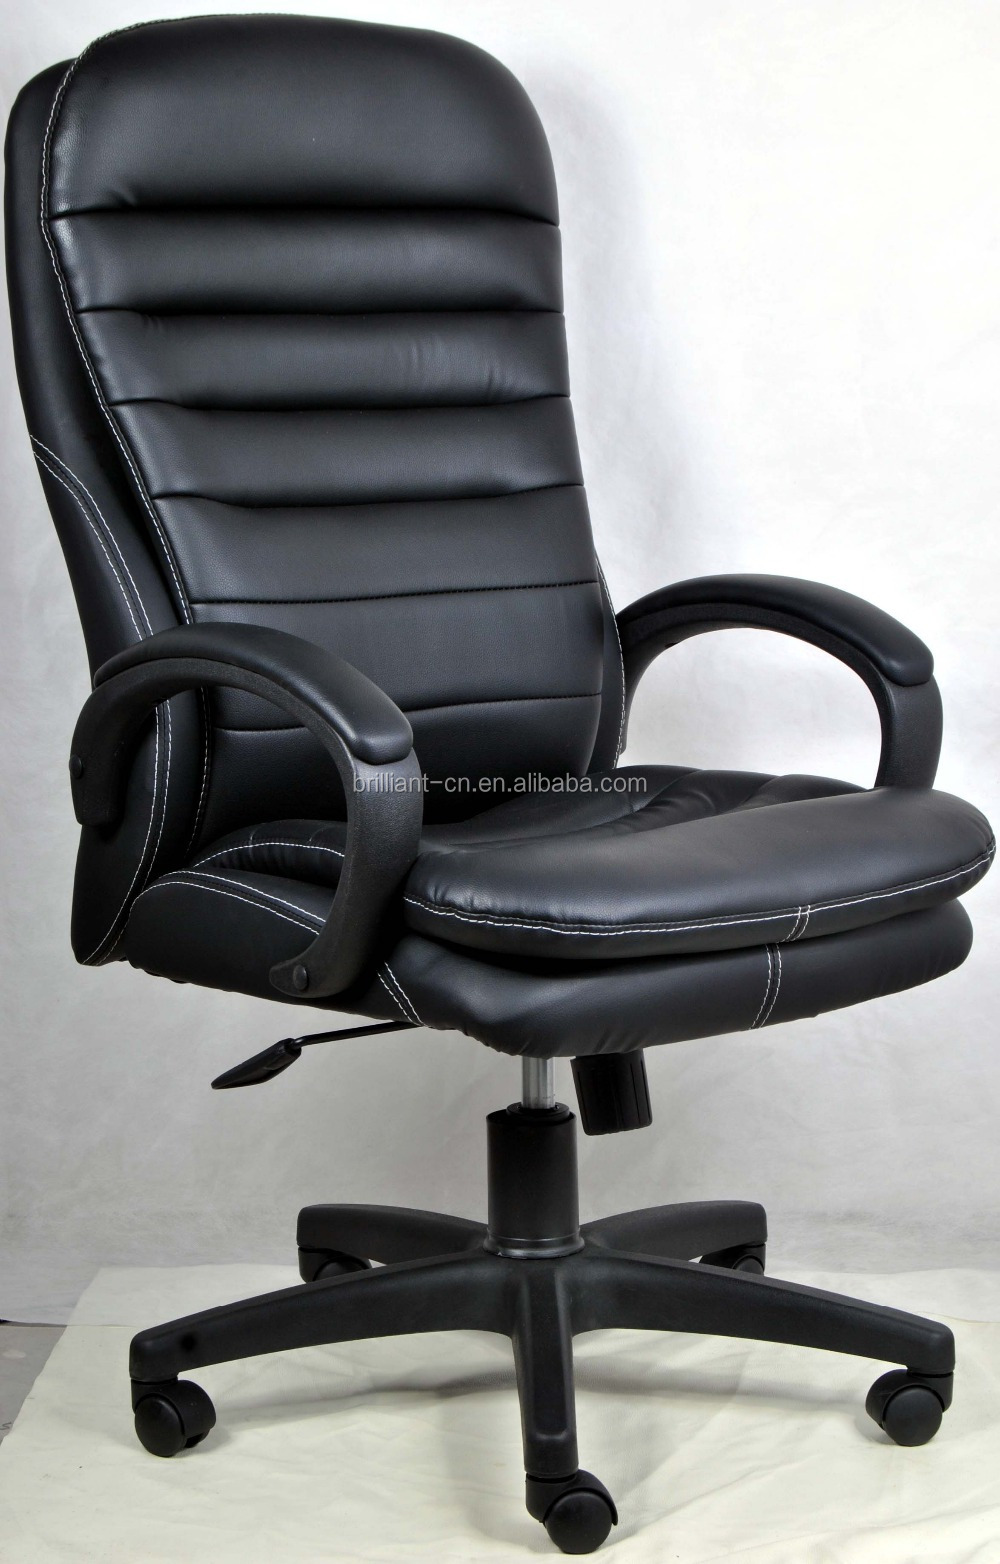 high back pu office chair for heavy people view high back